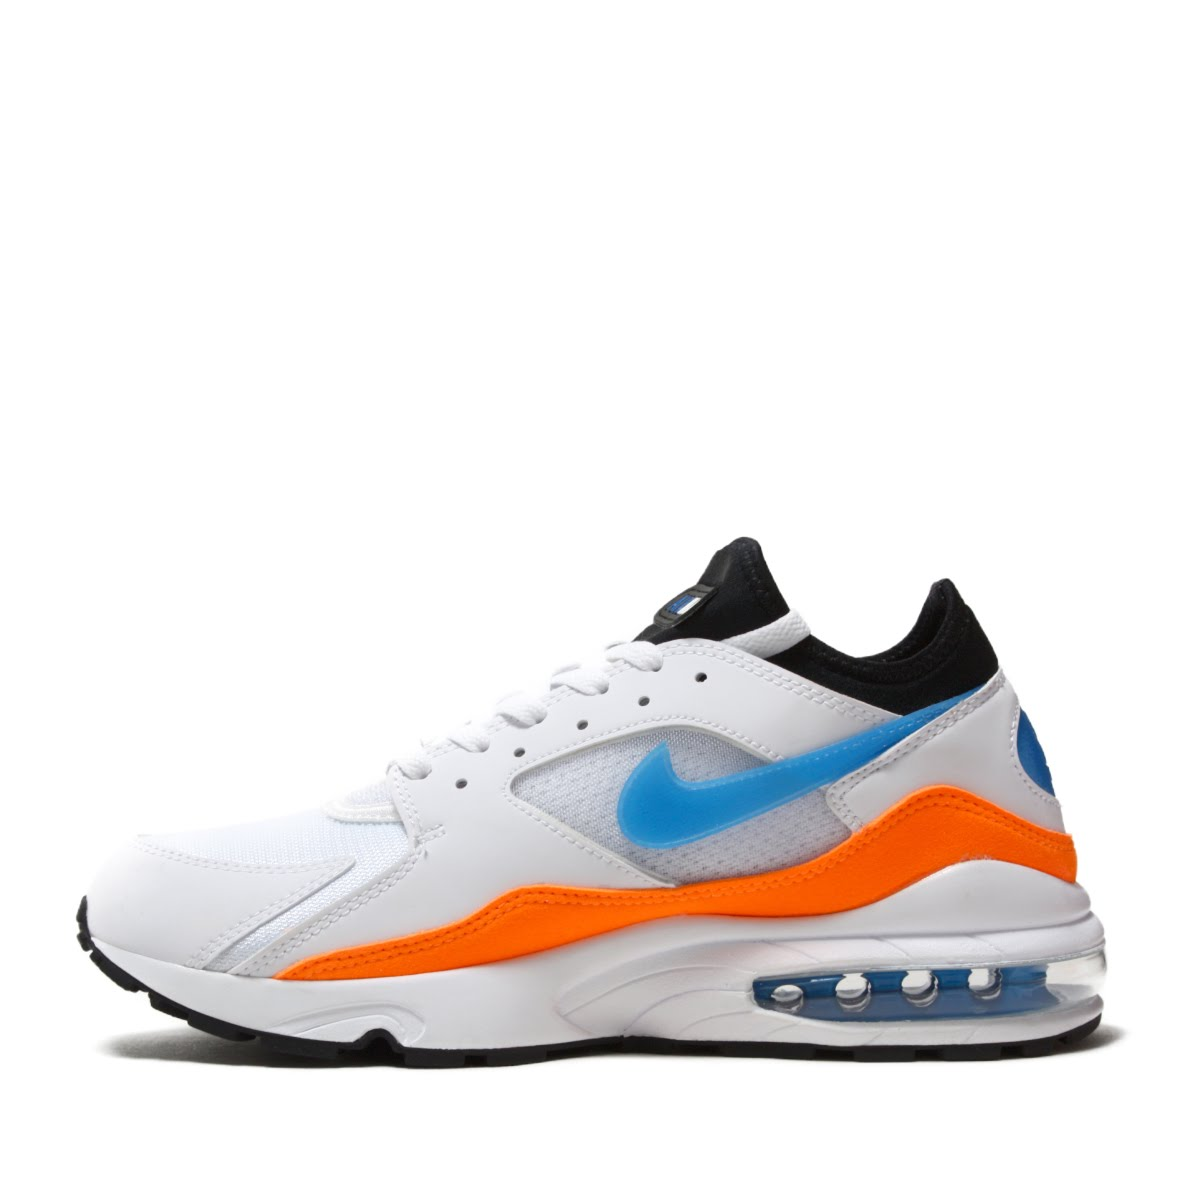 d3a622941b ... store nike air max 93 kie ney amax 93 white blue nebula total orange  black 18ss